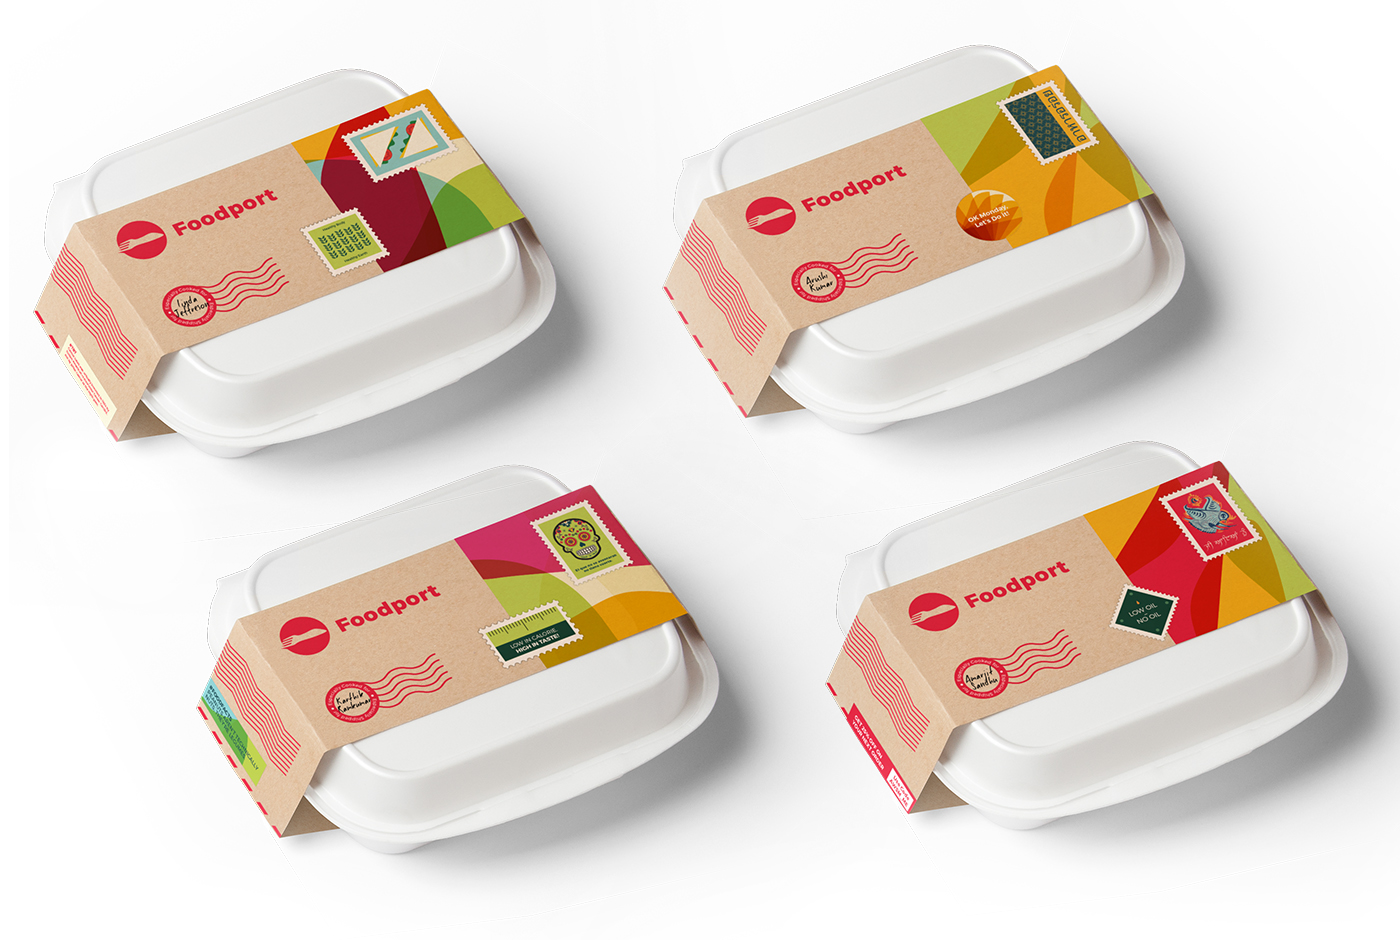 foodport_packaging